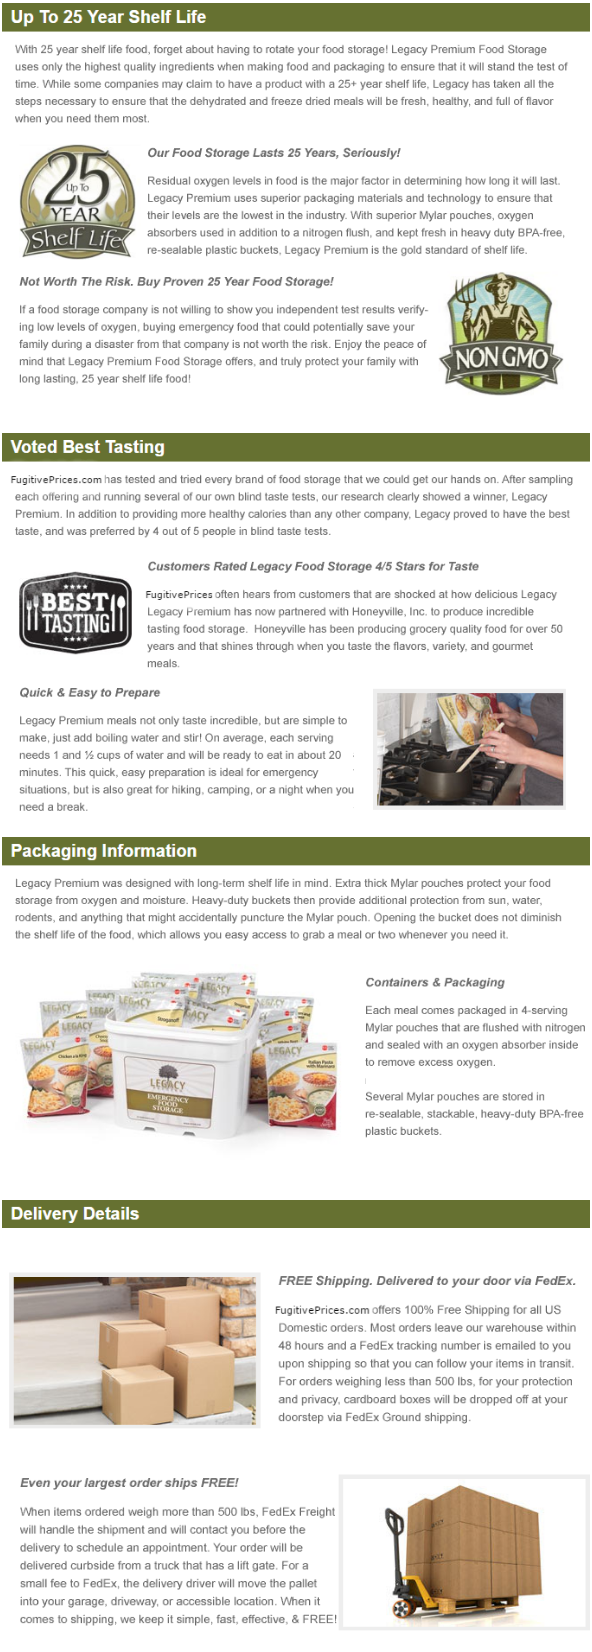 MEAL PACKAGING AND DELIVERY INFORMATION